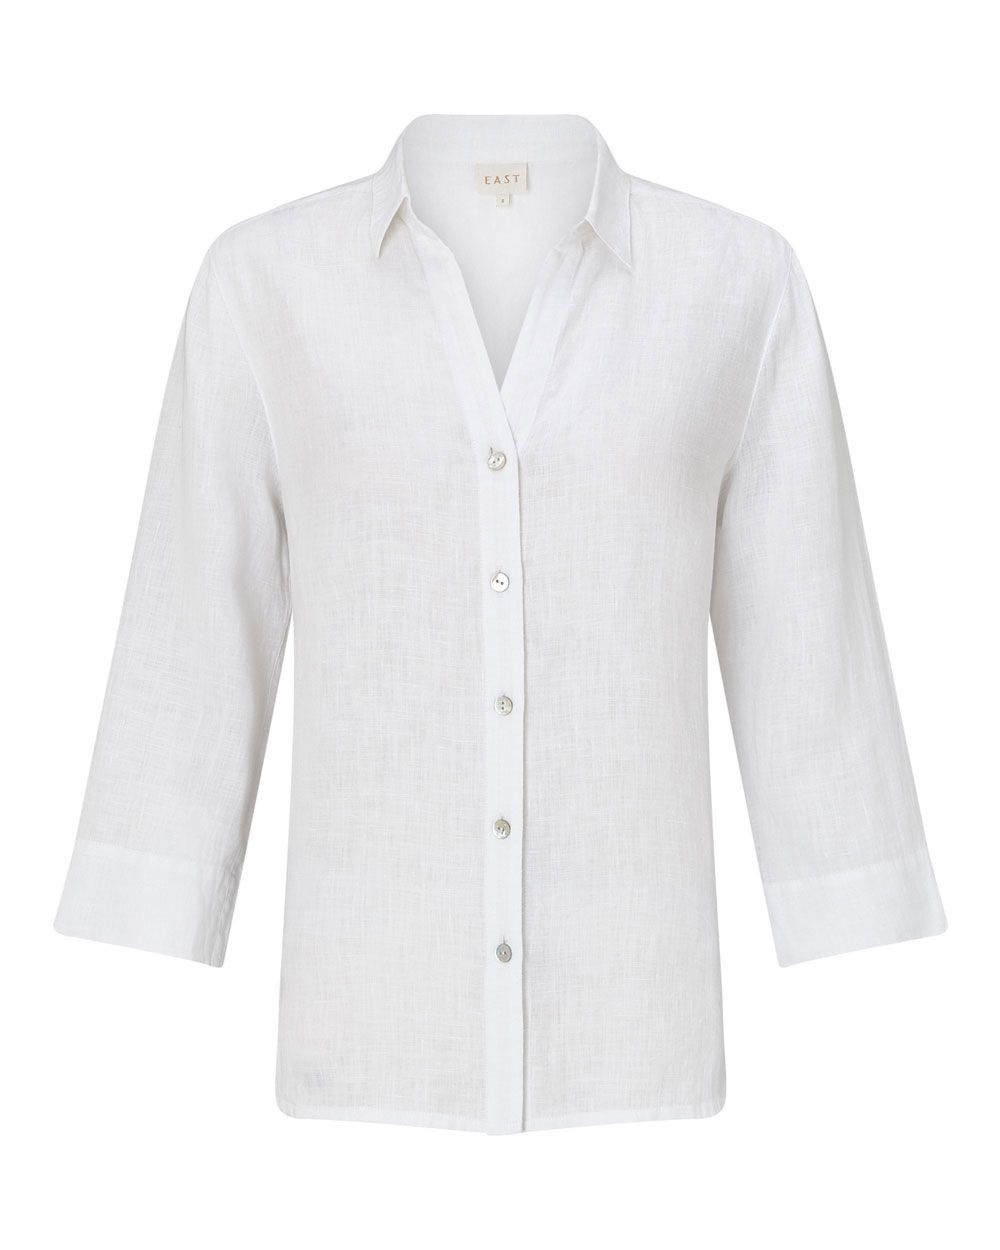 East Linen Fitted Shirt, White